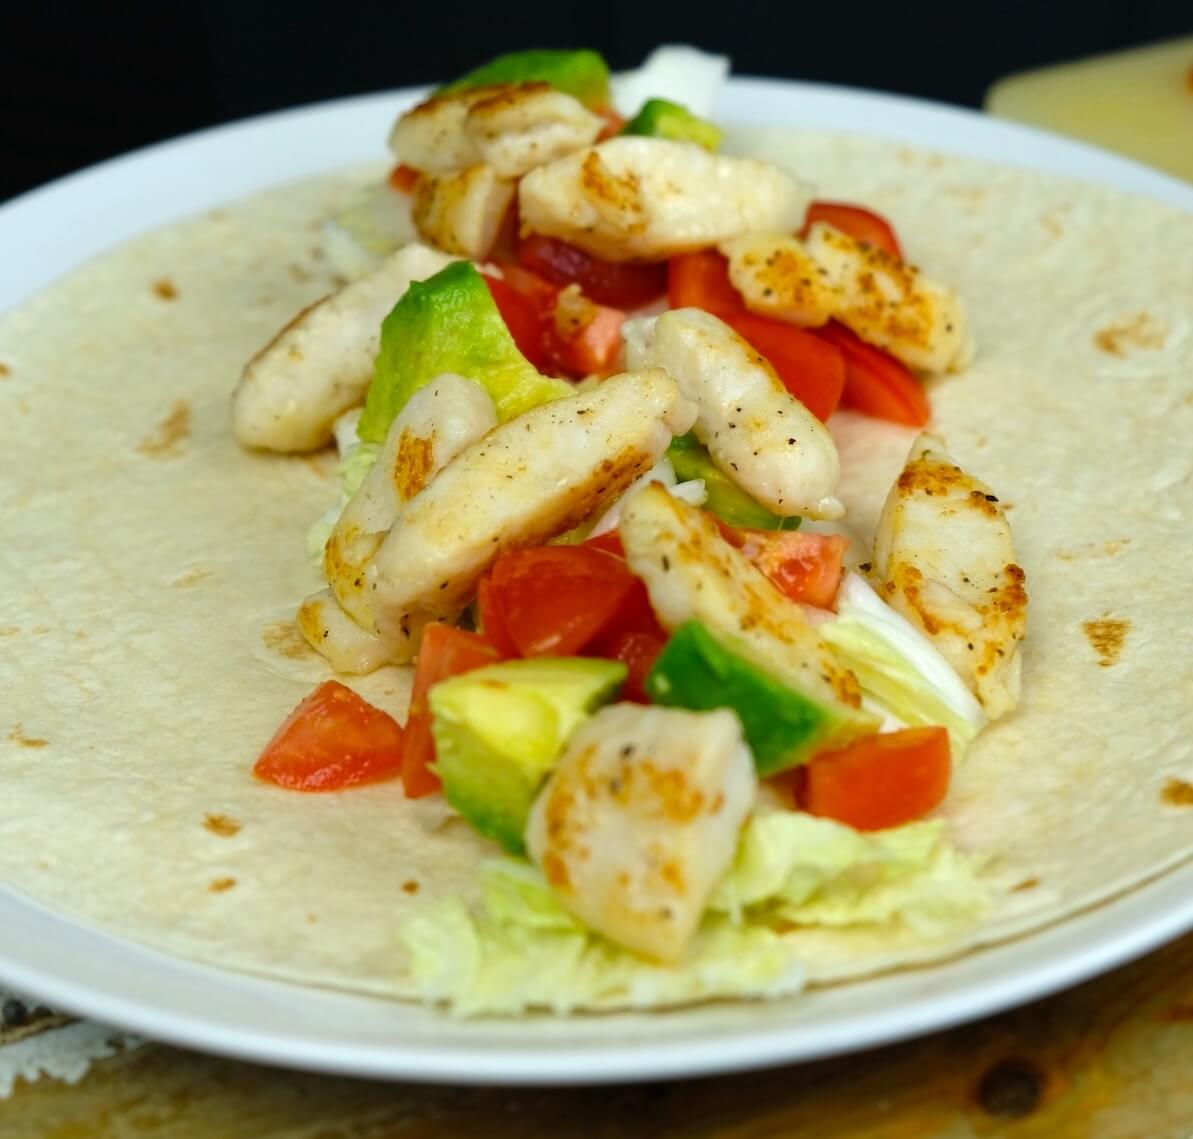 Fish tortilla with pangasius - Your everyday fish